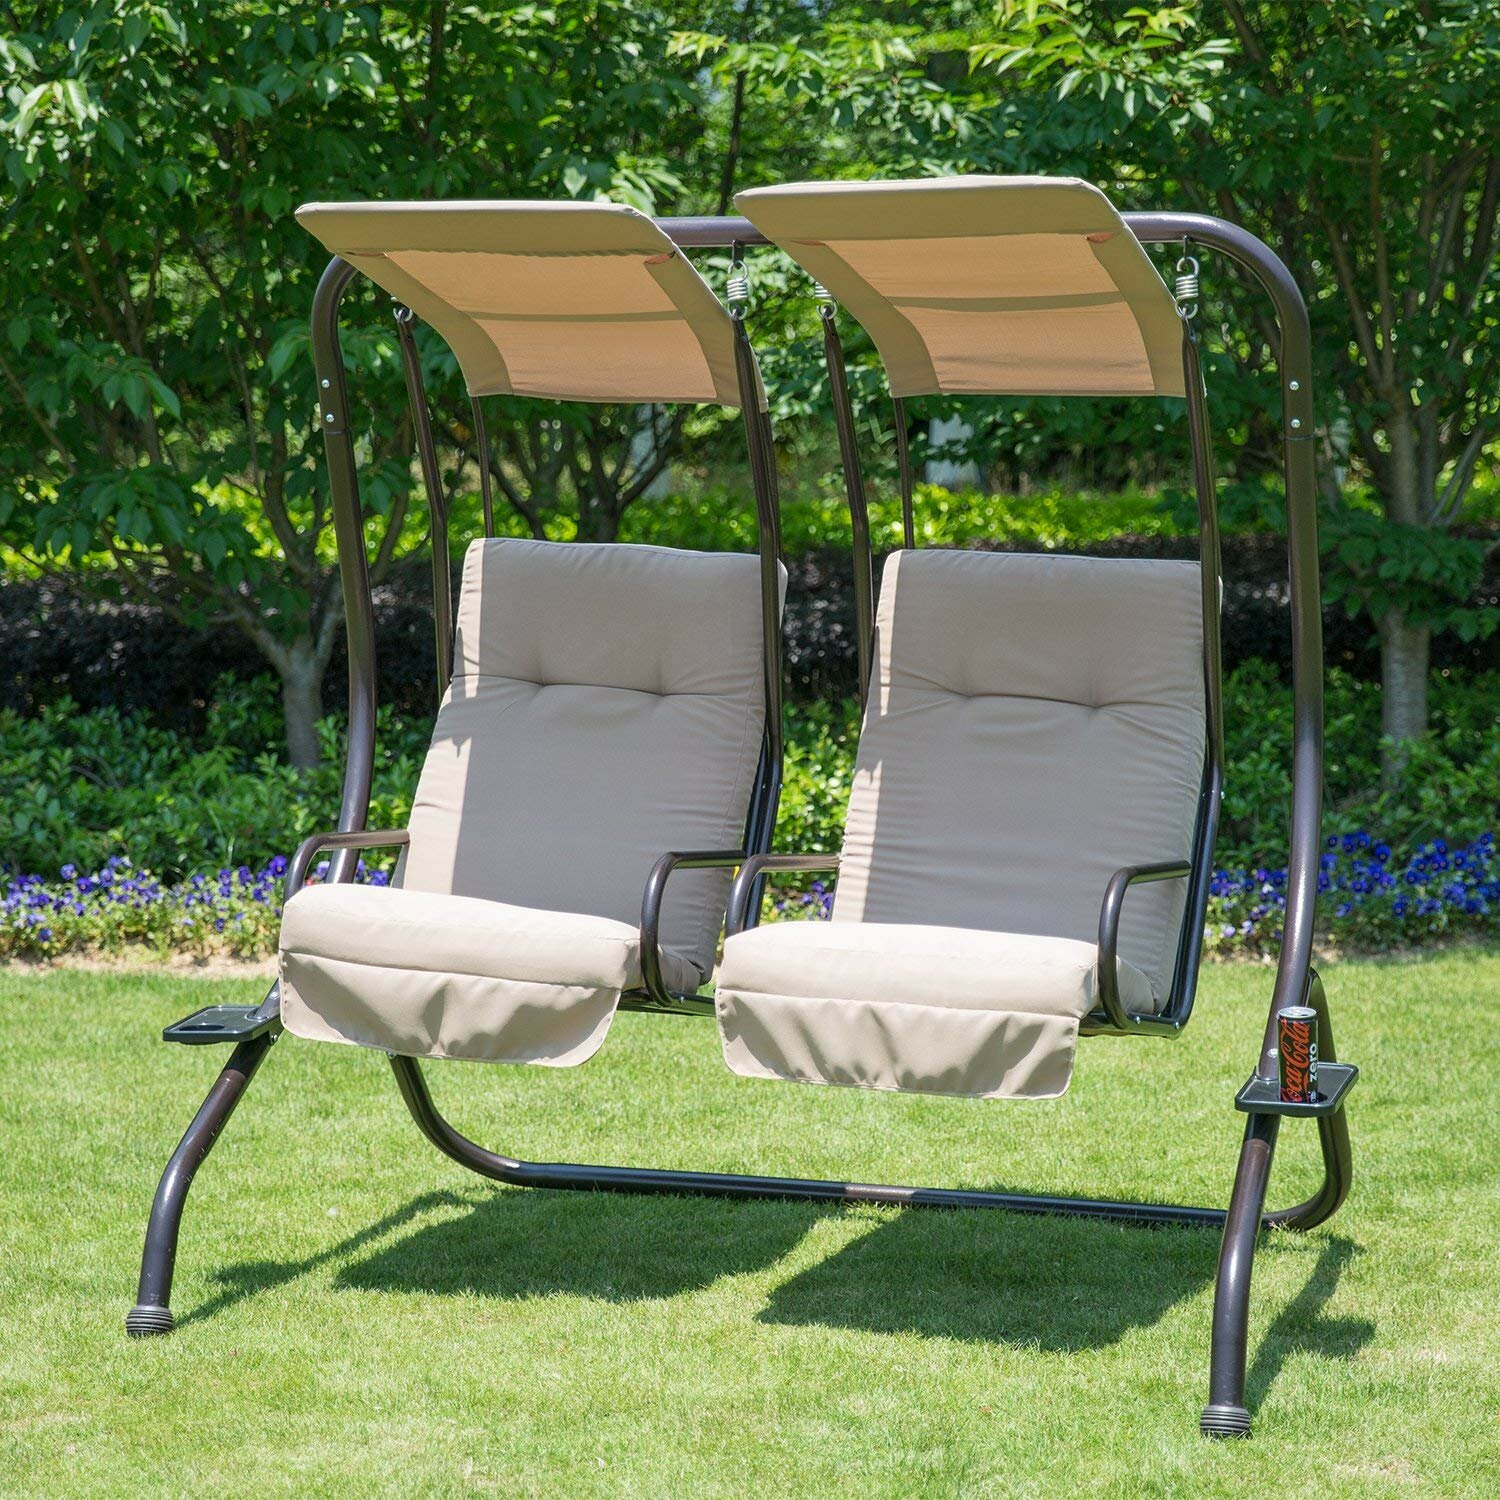 Freeport Park Morrilton Porch Swing With Stand & Reviews In 2 Person Adjustable Tilt Canopy Patio Loveseat Porch Swings (Image 13 of 25)